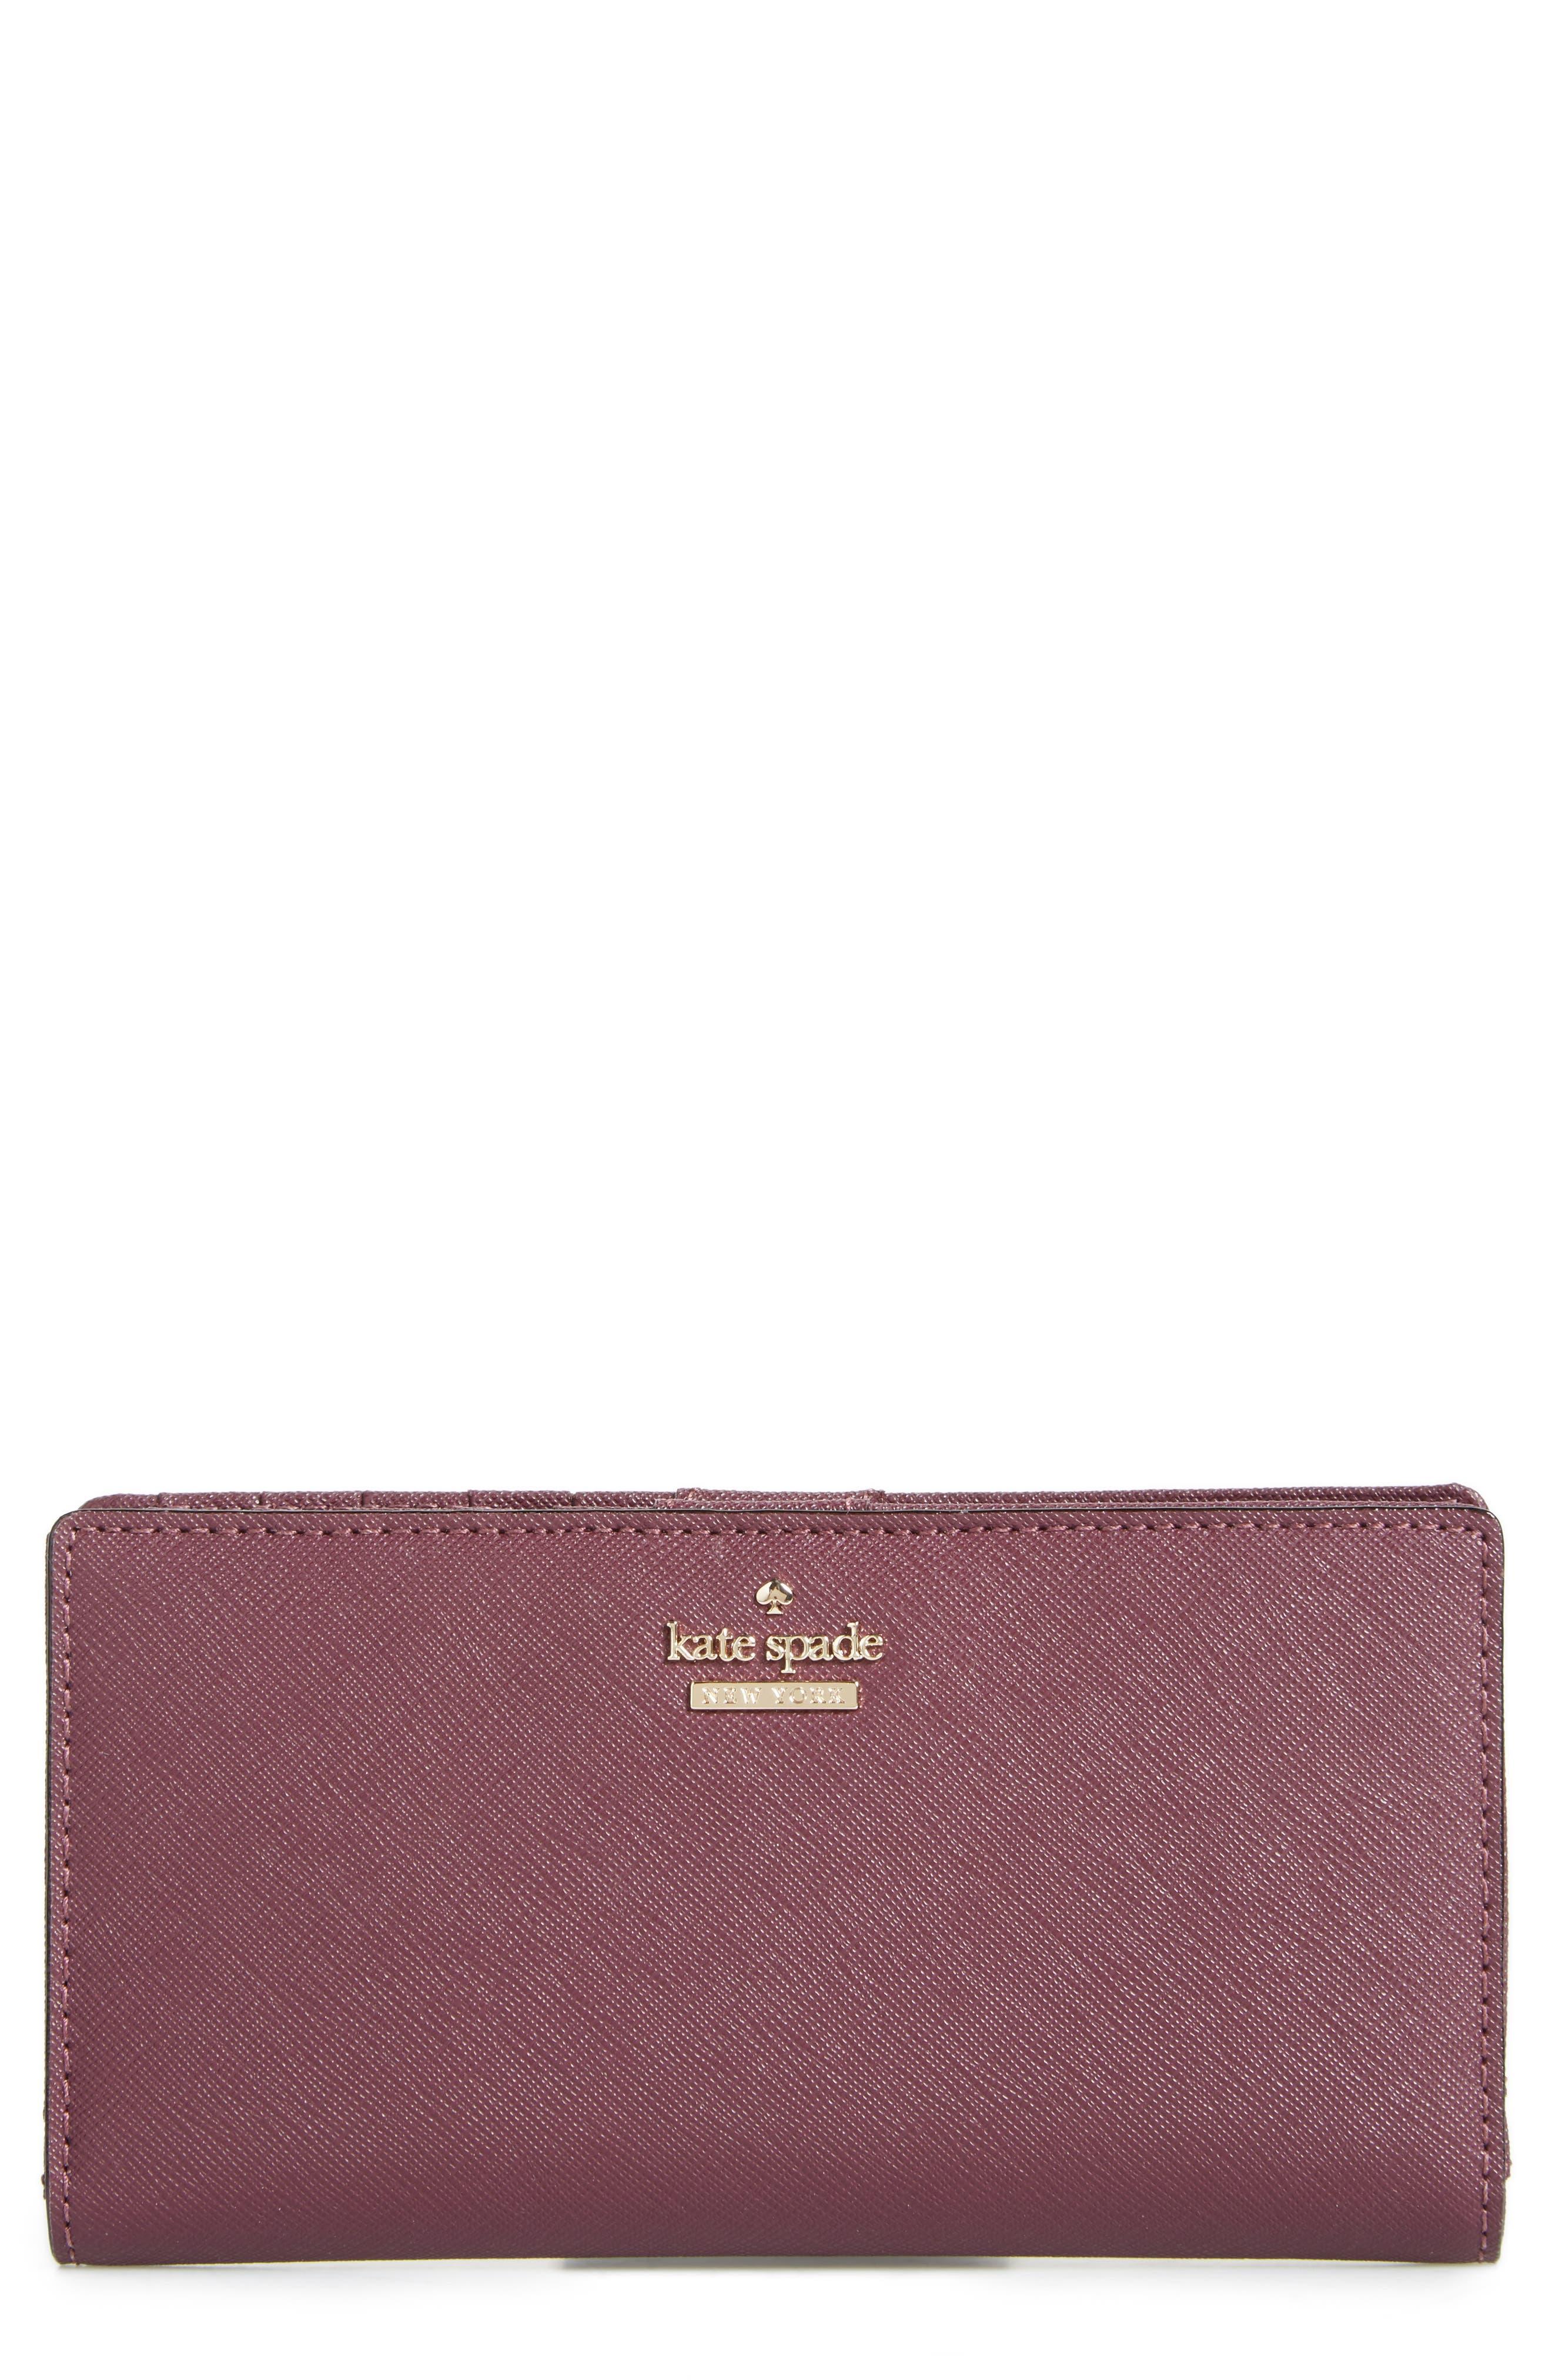 KATE SPADE NEW YORK cameron street - stacy textured leather wallet